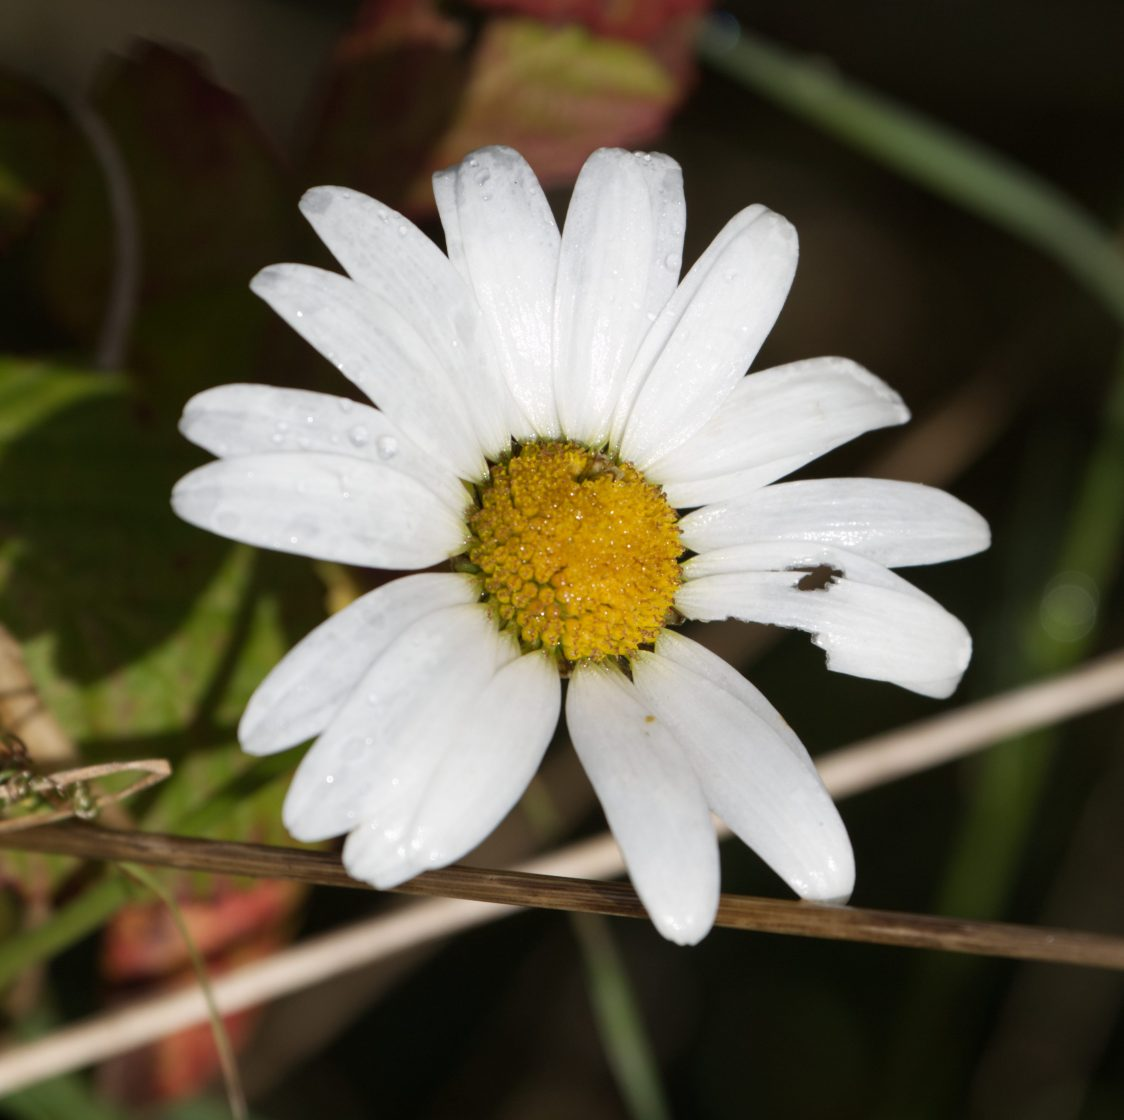 A close-ip image of an oxeye daisy. 16 long white petals arranged around a cluster of yellow florets forming a a mounded disc at the centre.